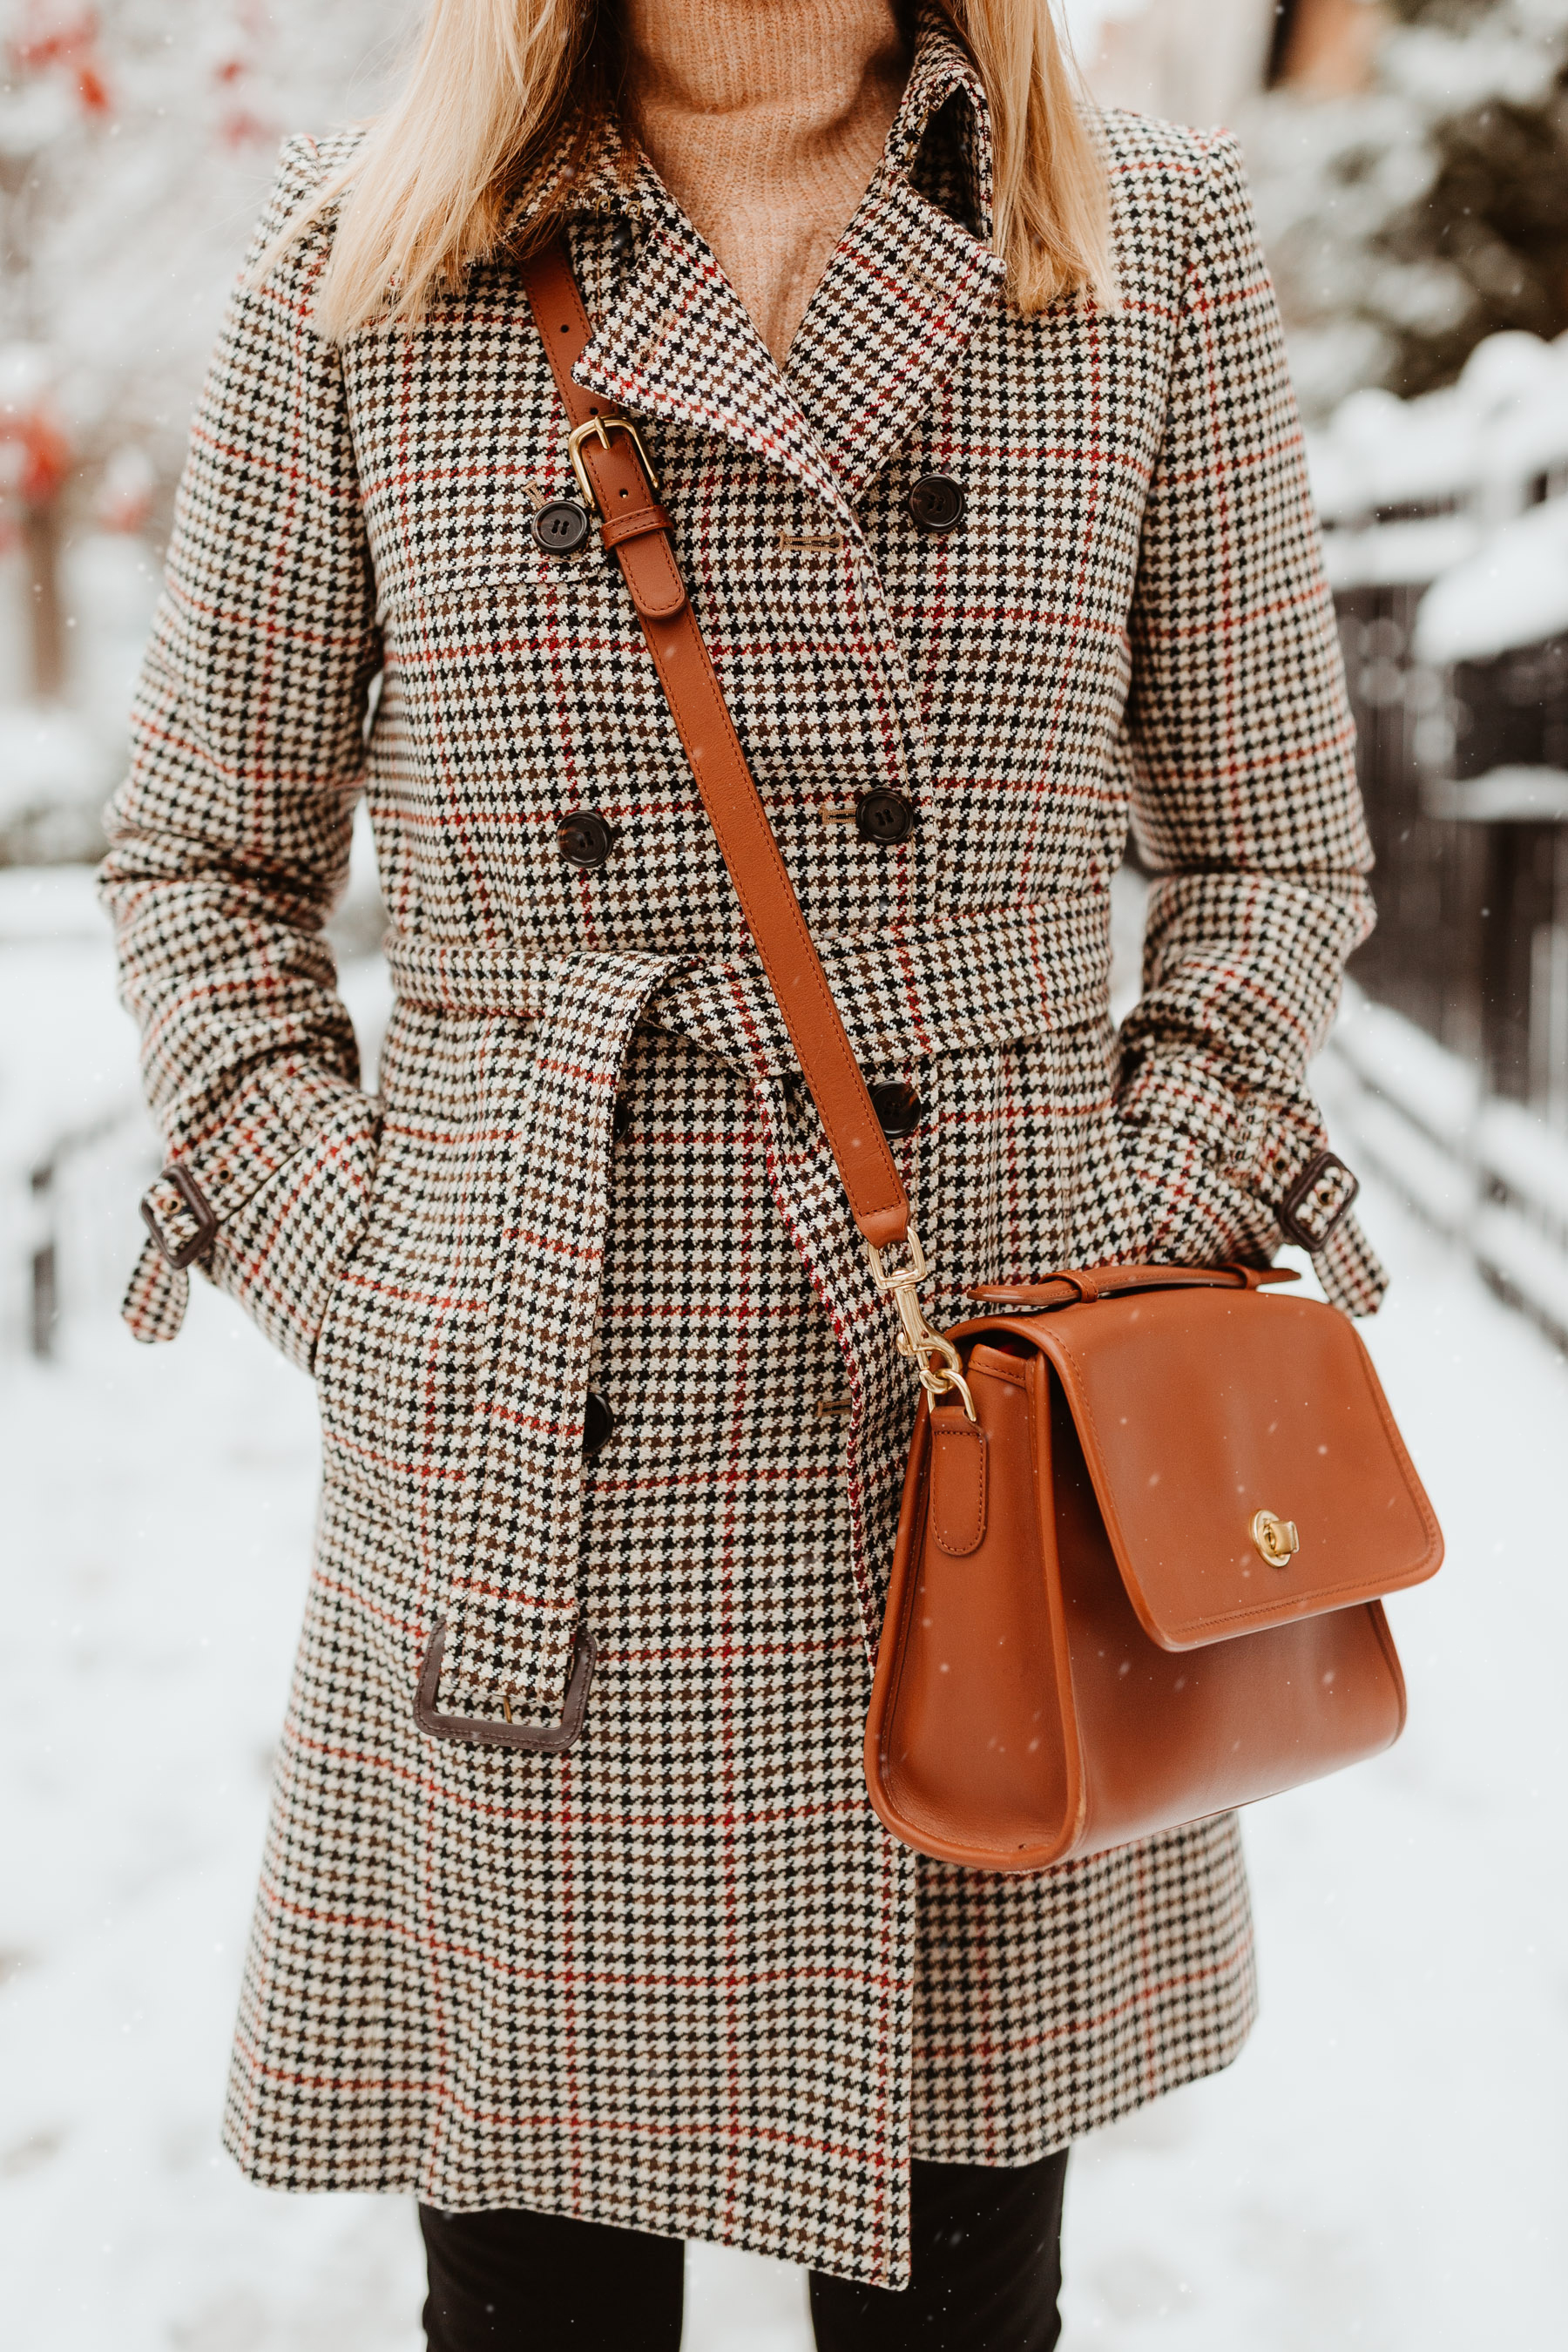 How to Find & Restore a Vintage Coach Bag